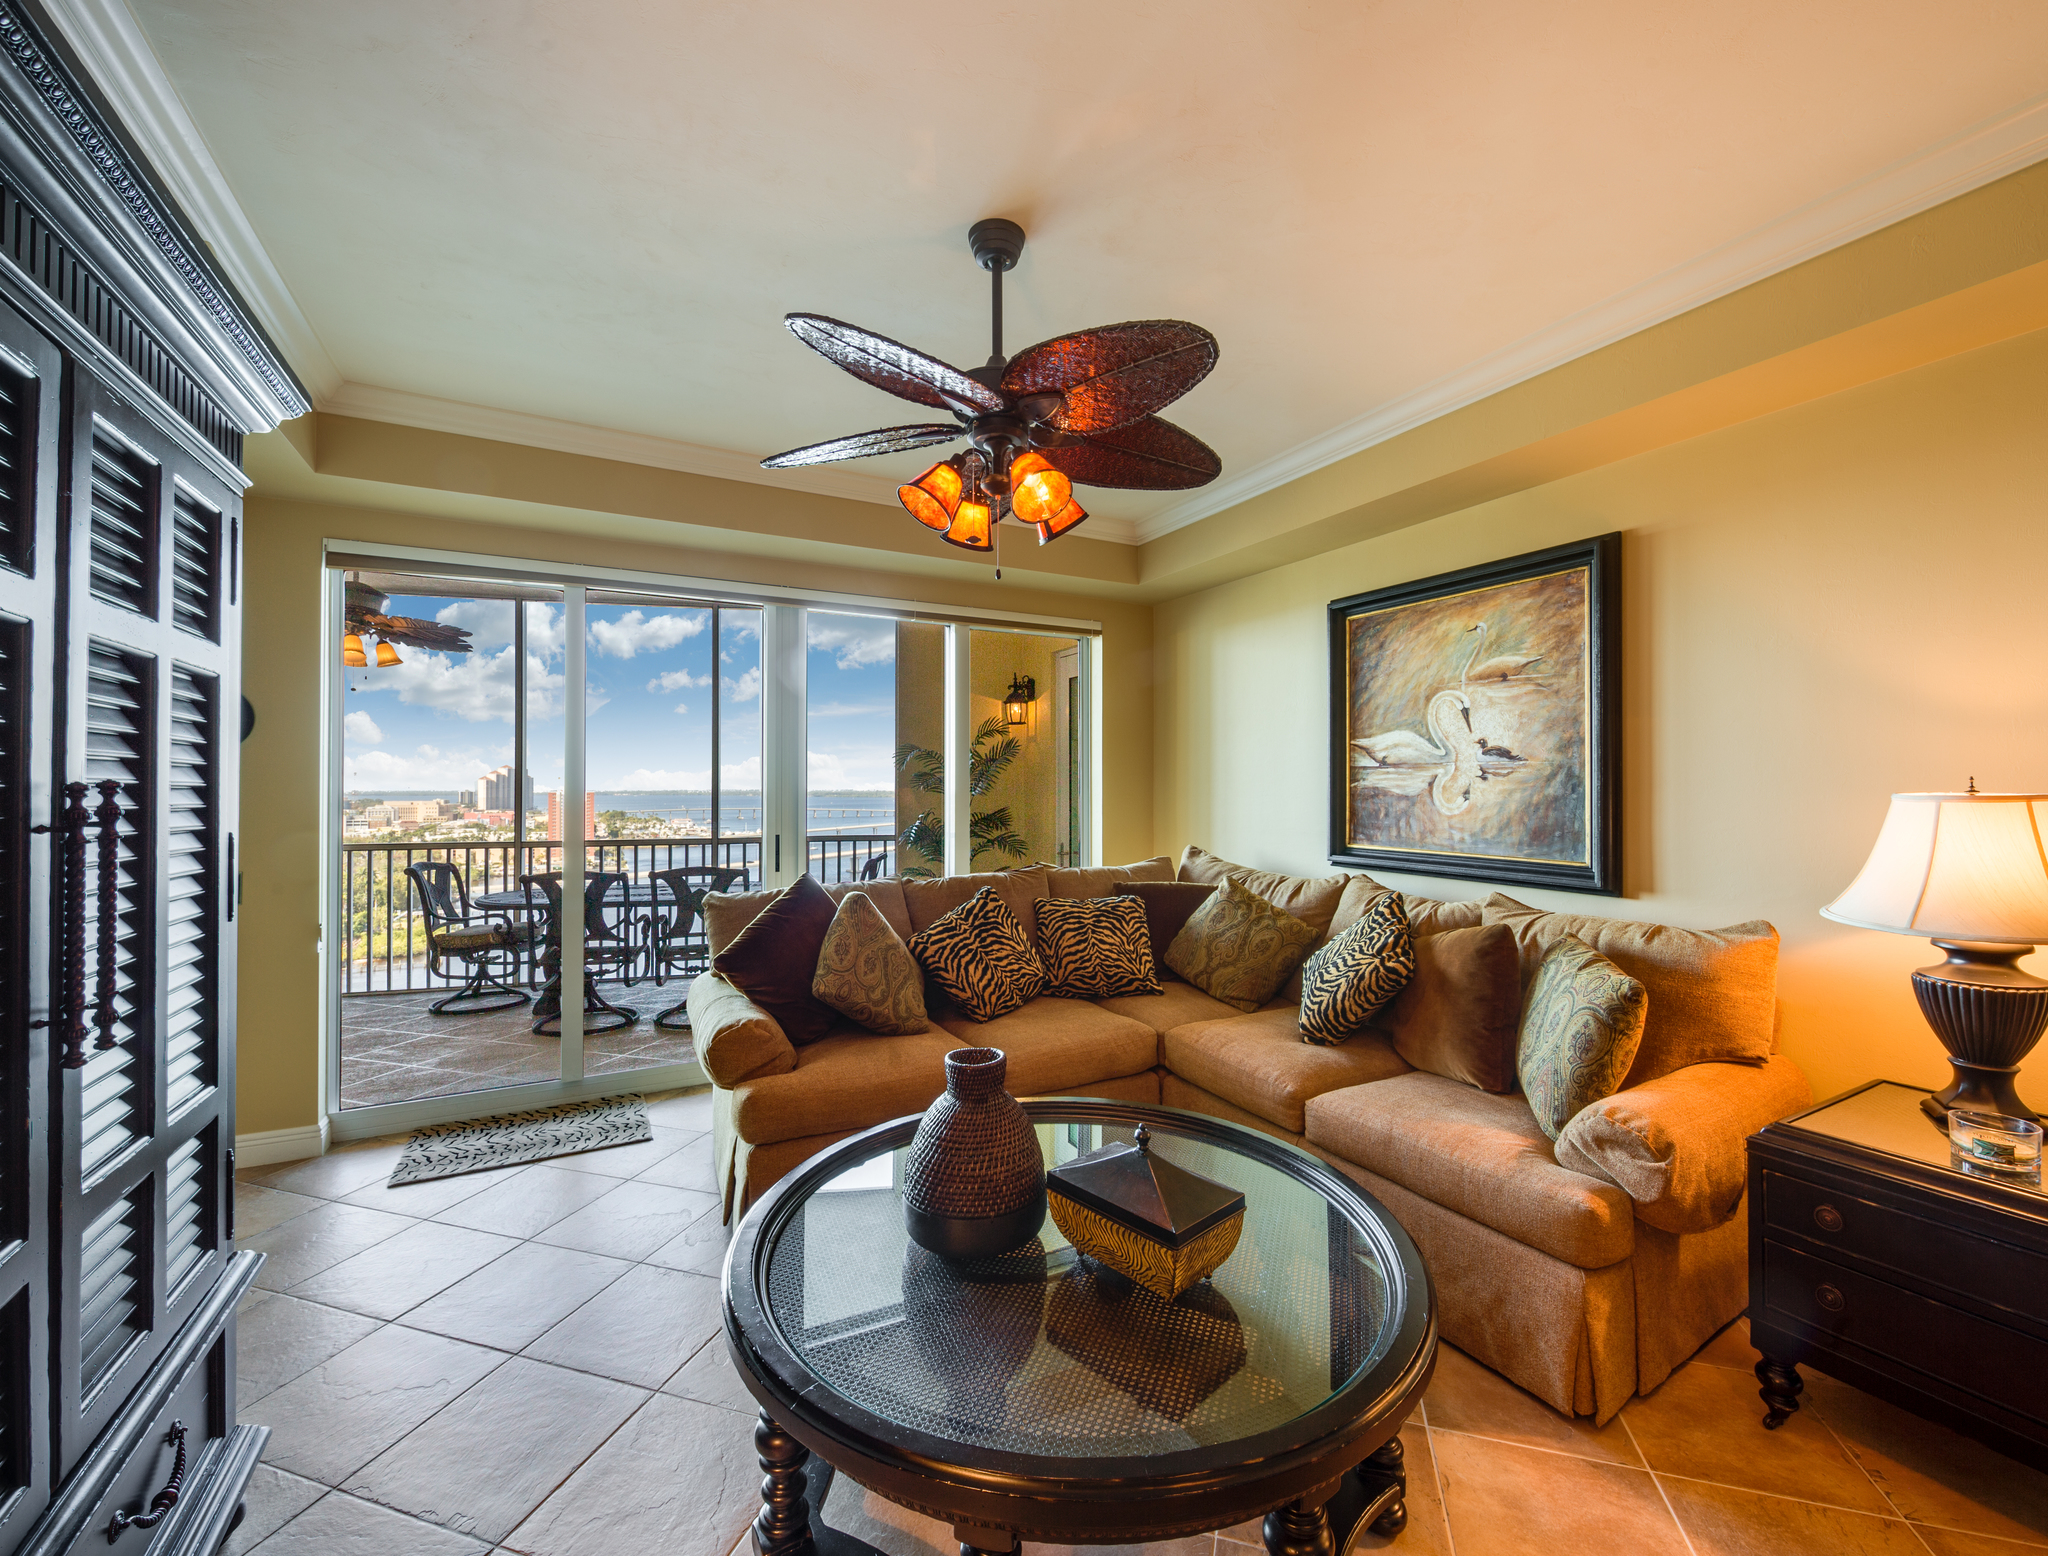 A view overlooking the living area and Caloosahatchee River in Cape Coral, FL.